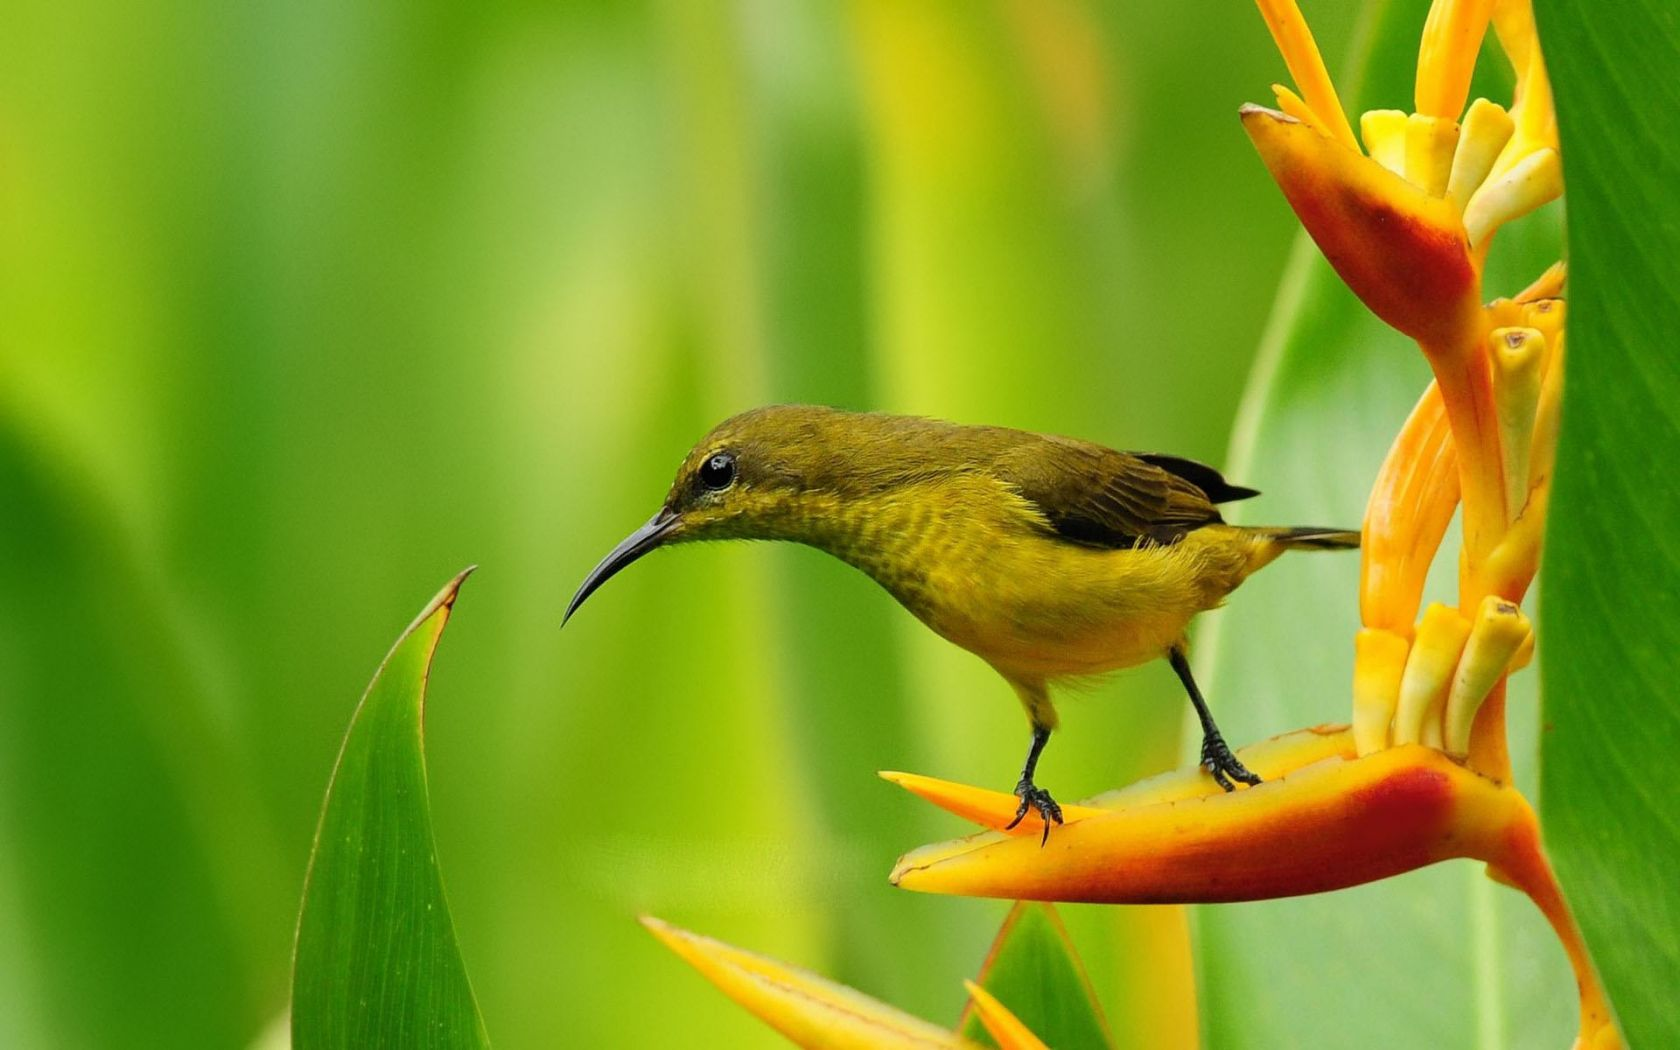 Small Bird On Bird Of Paradise Flower Wallpaper 1680x1050